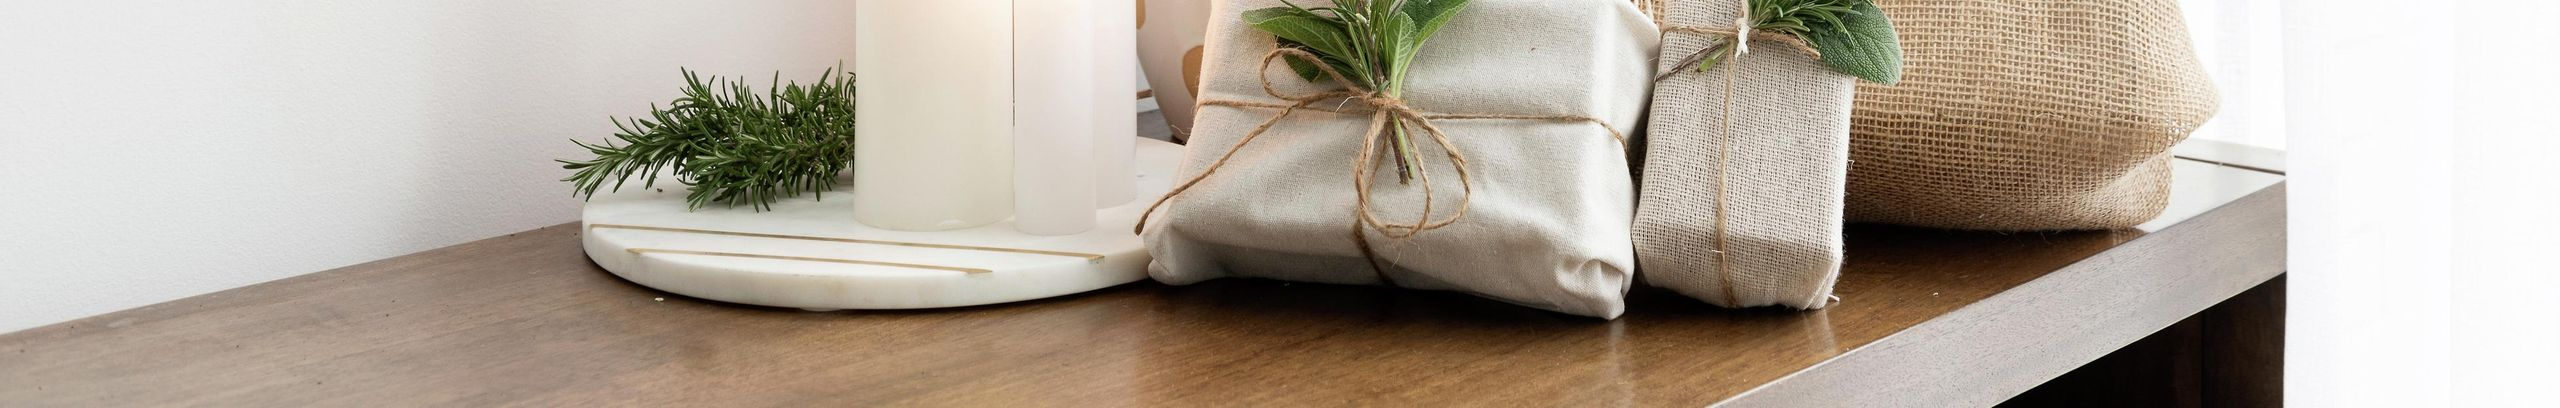 Gifts wrapped with hessian and decorated with rosemary, white candles and a mini Christmas tree.